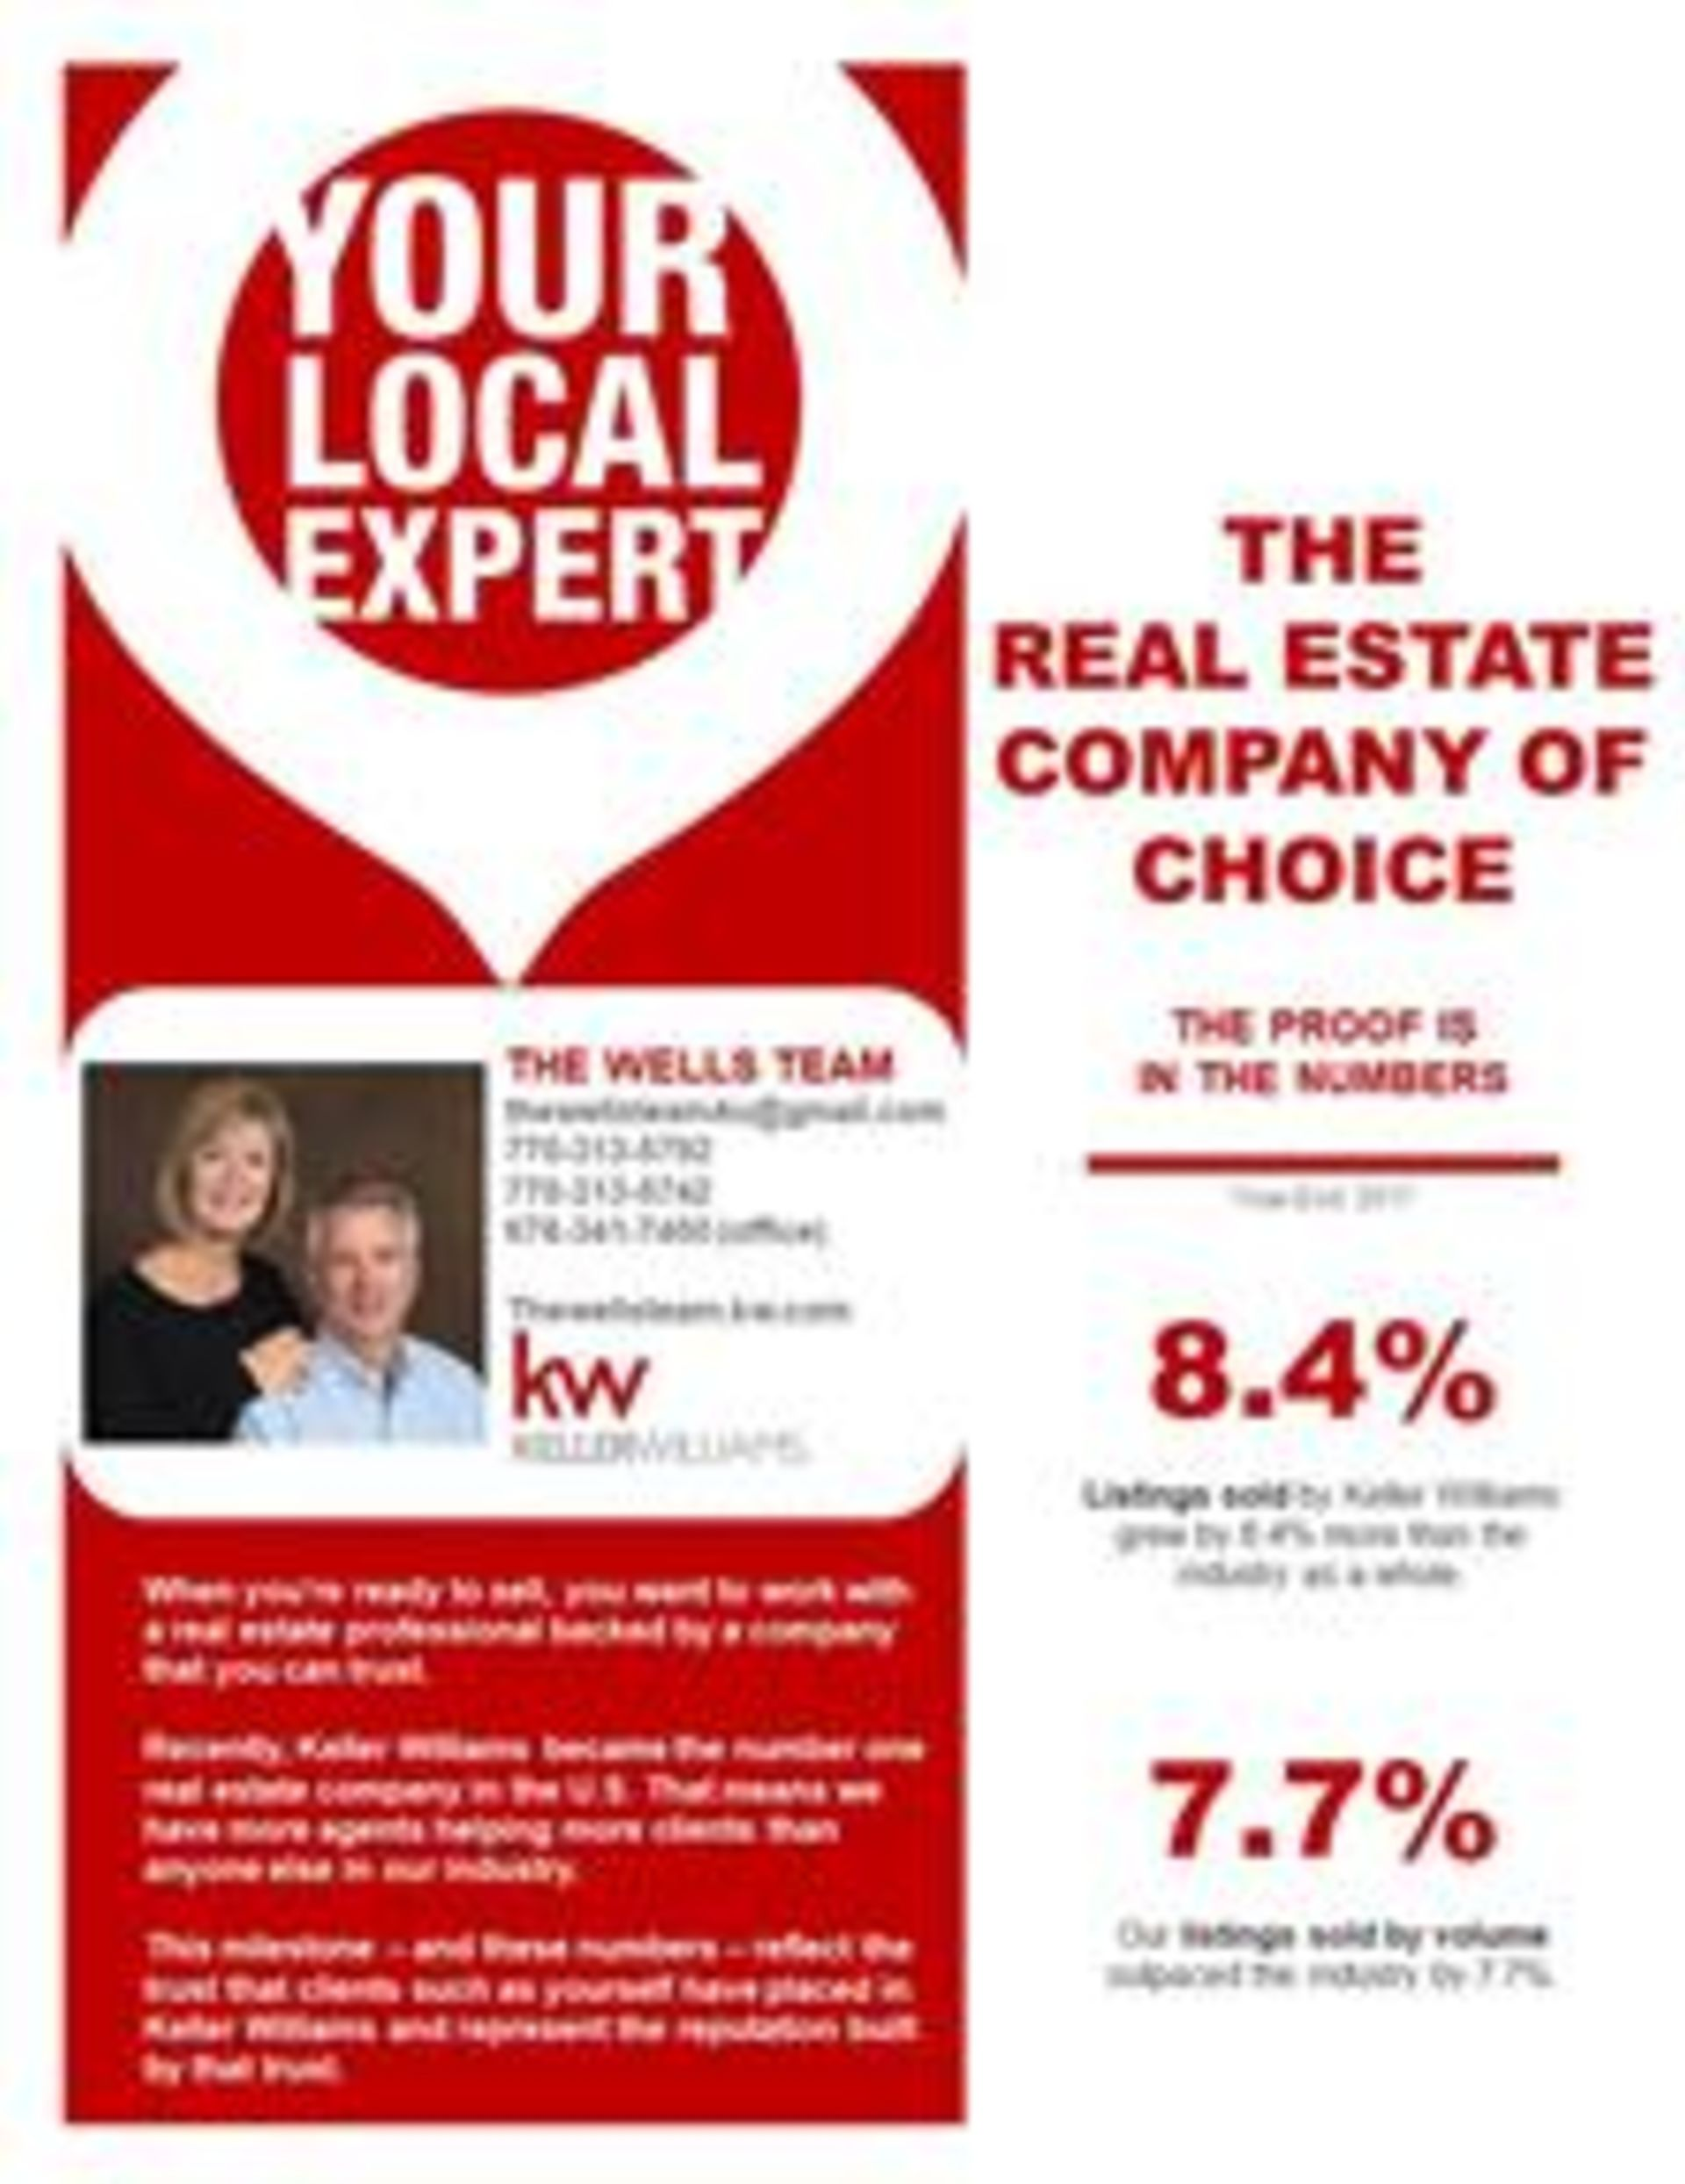 This month in Real Estate March from Keller Williams